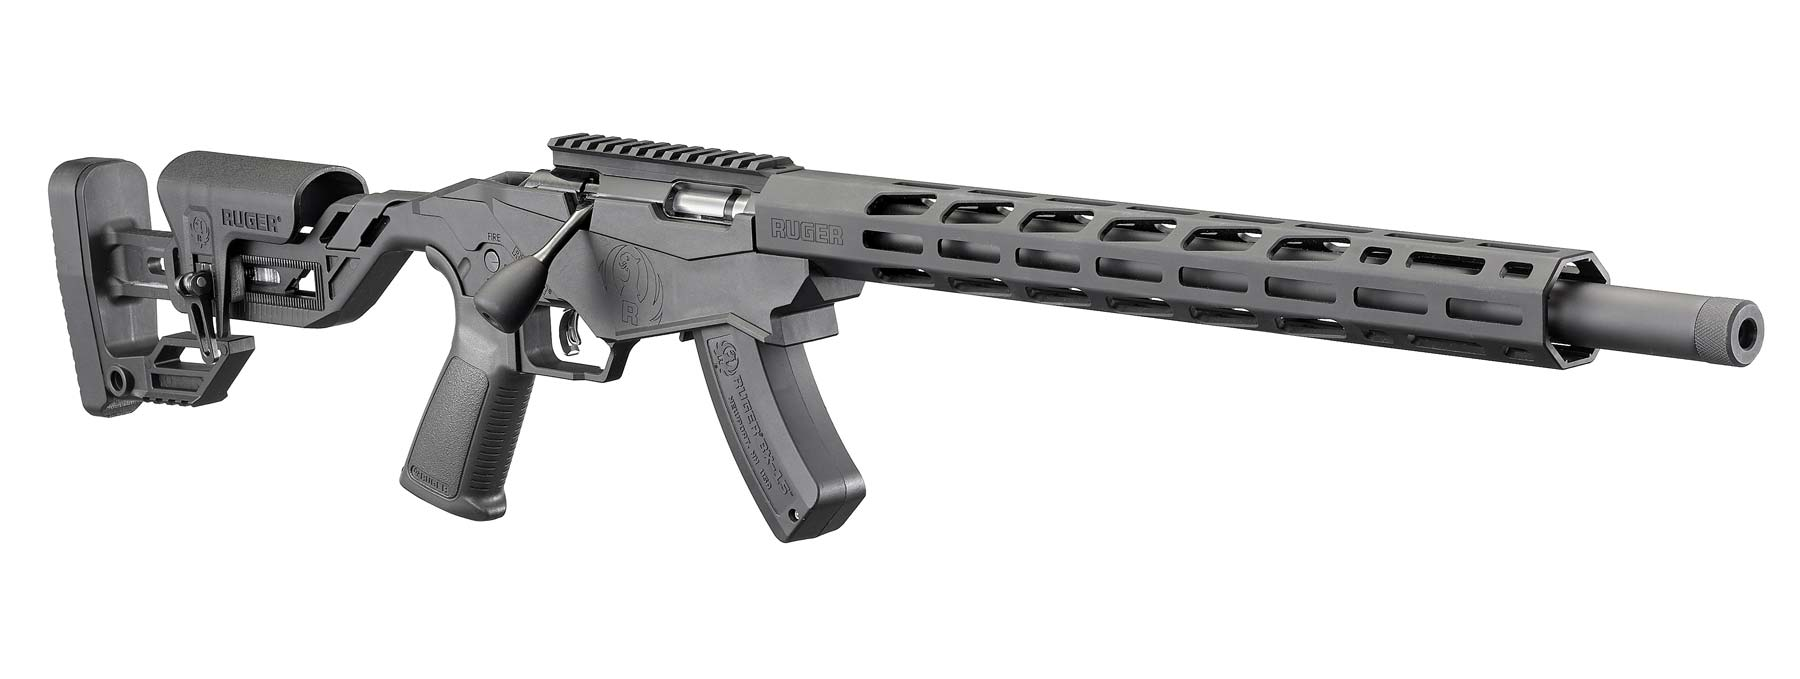 Right view of the Ruger Precision Rimfire rifle